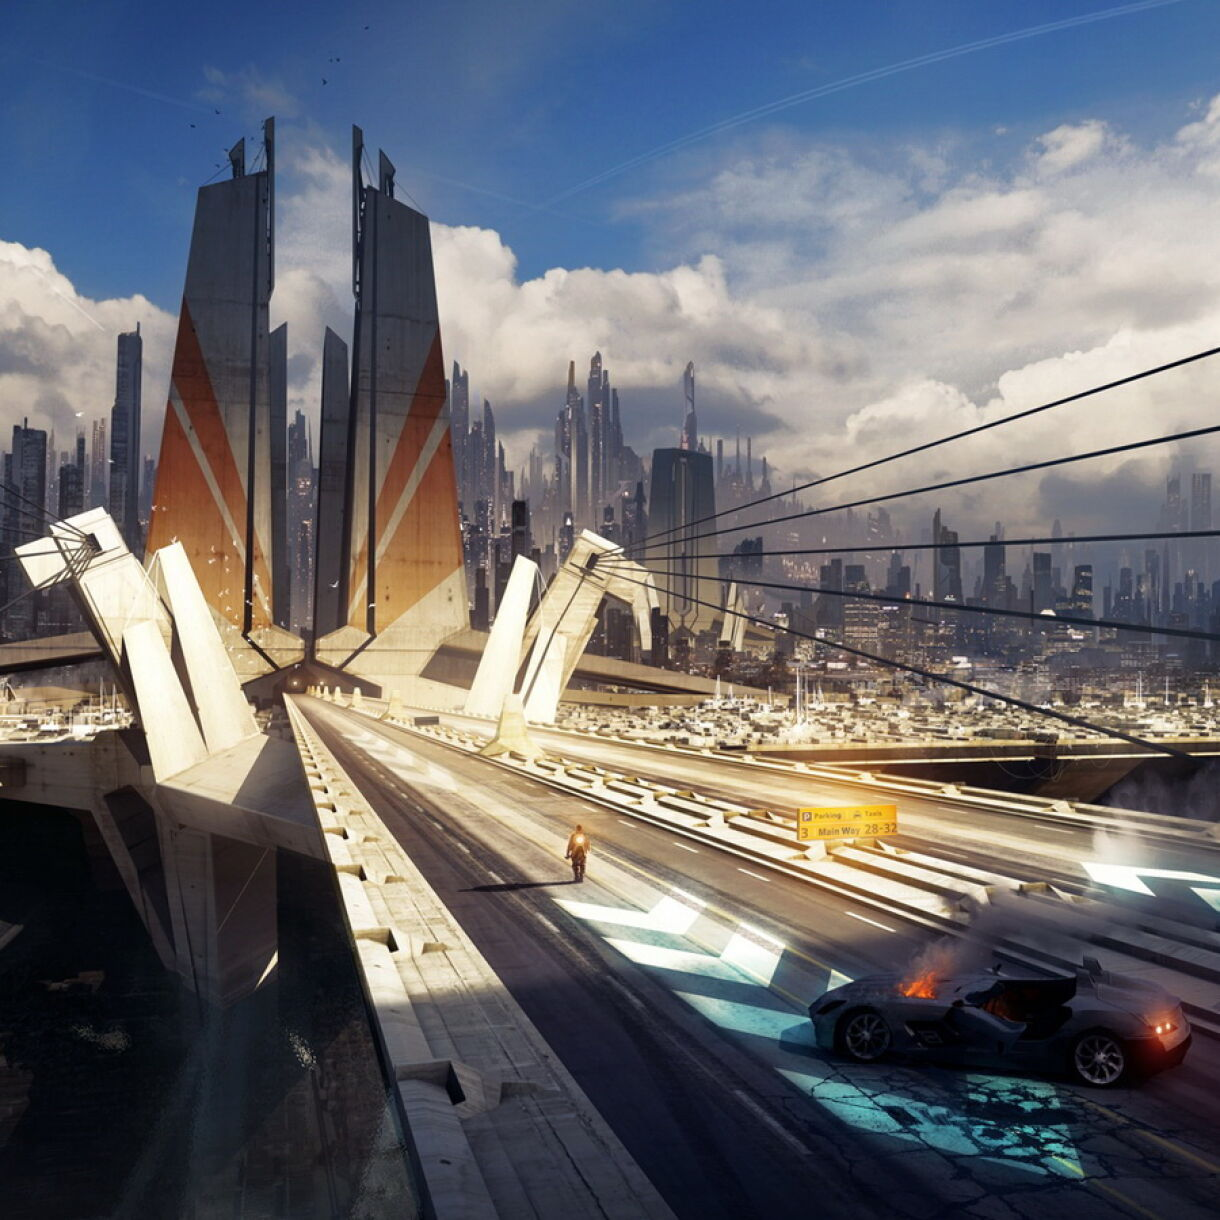 An interview with Call of Duty Black Ops III concept artist Bastien Grivet